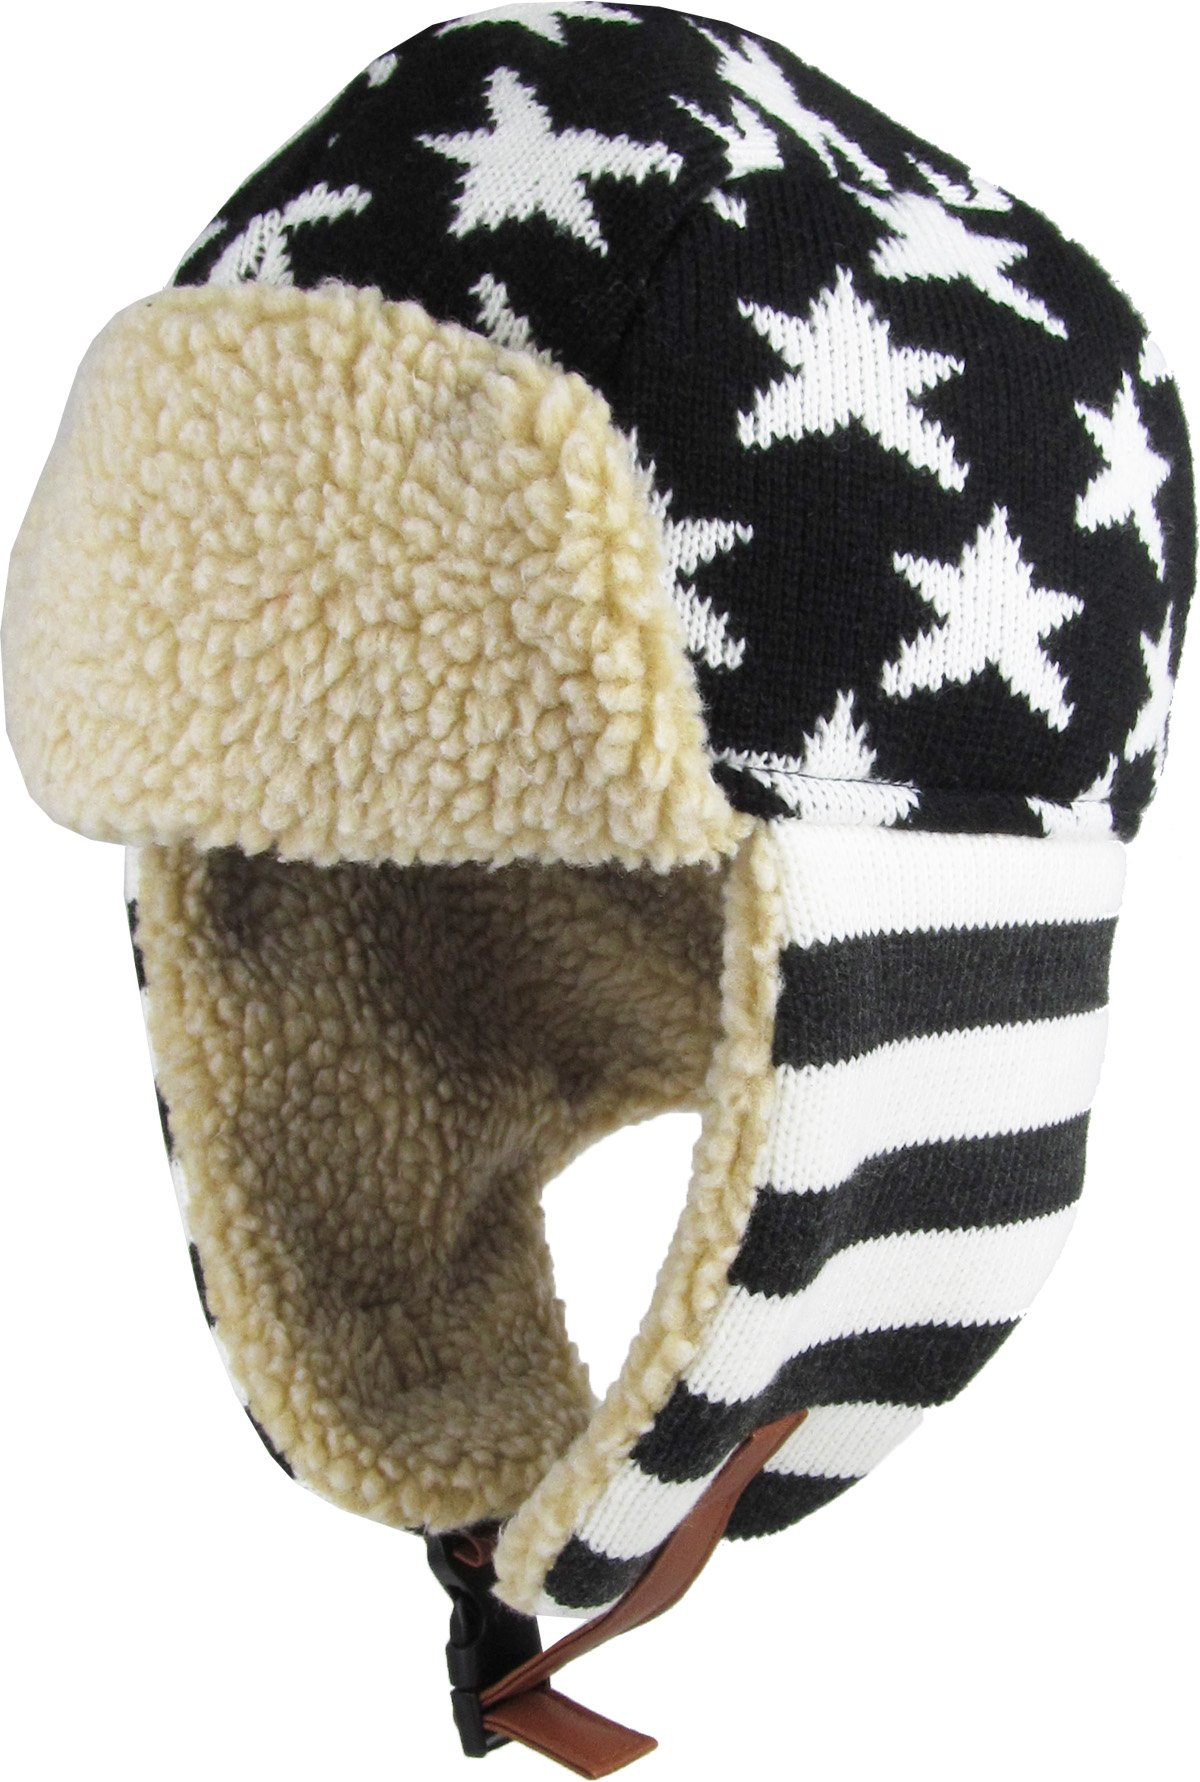 Winter Beanies are great gift ideas for a girlfriend